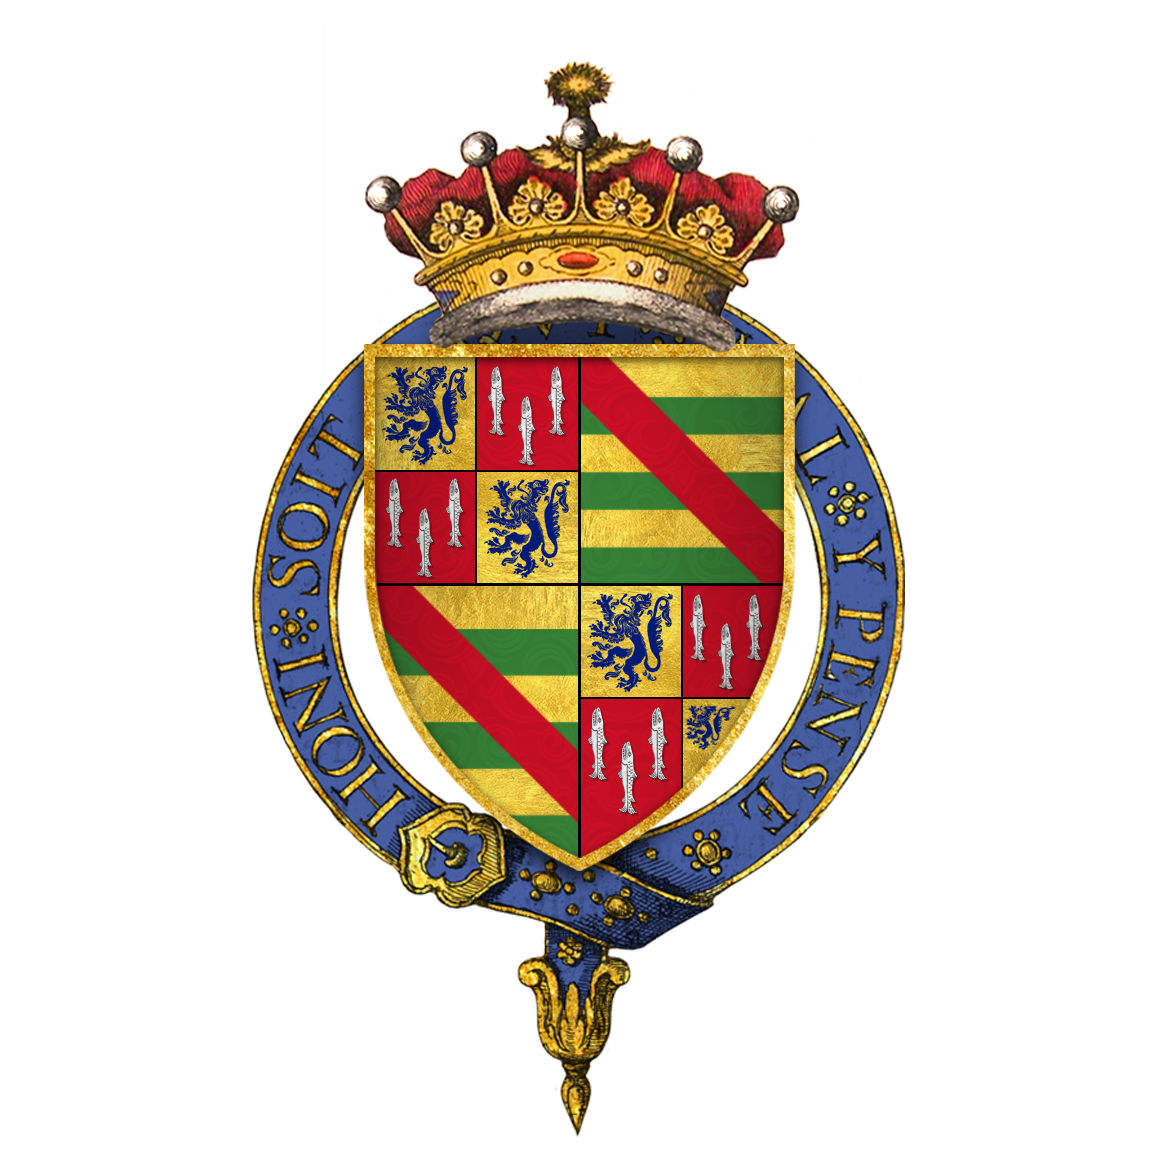 Coat of arms of Sir Henry Percy 4th Earl of Northumberland KG